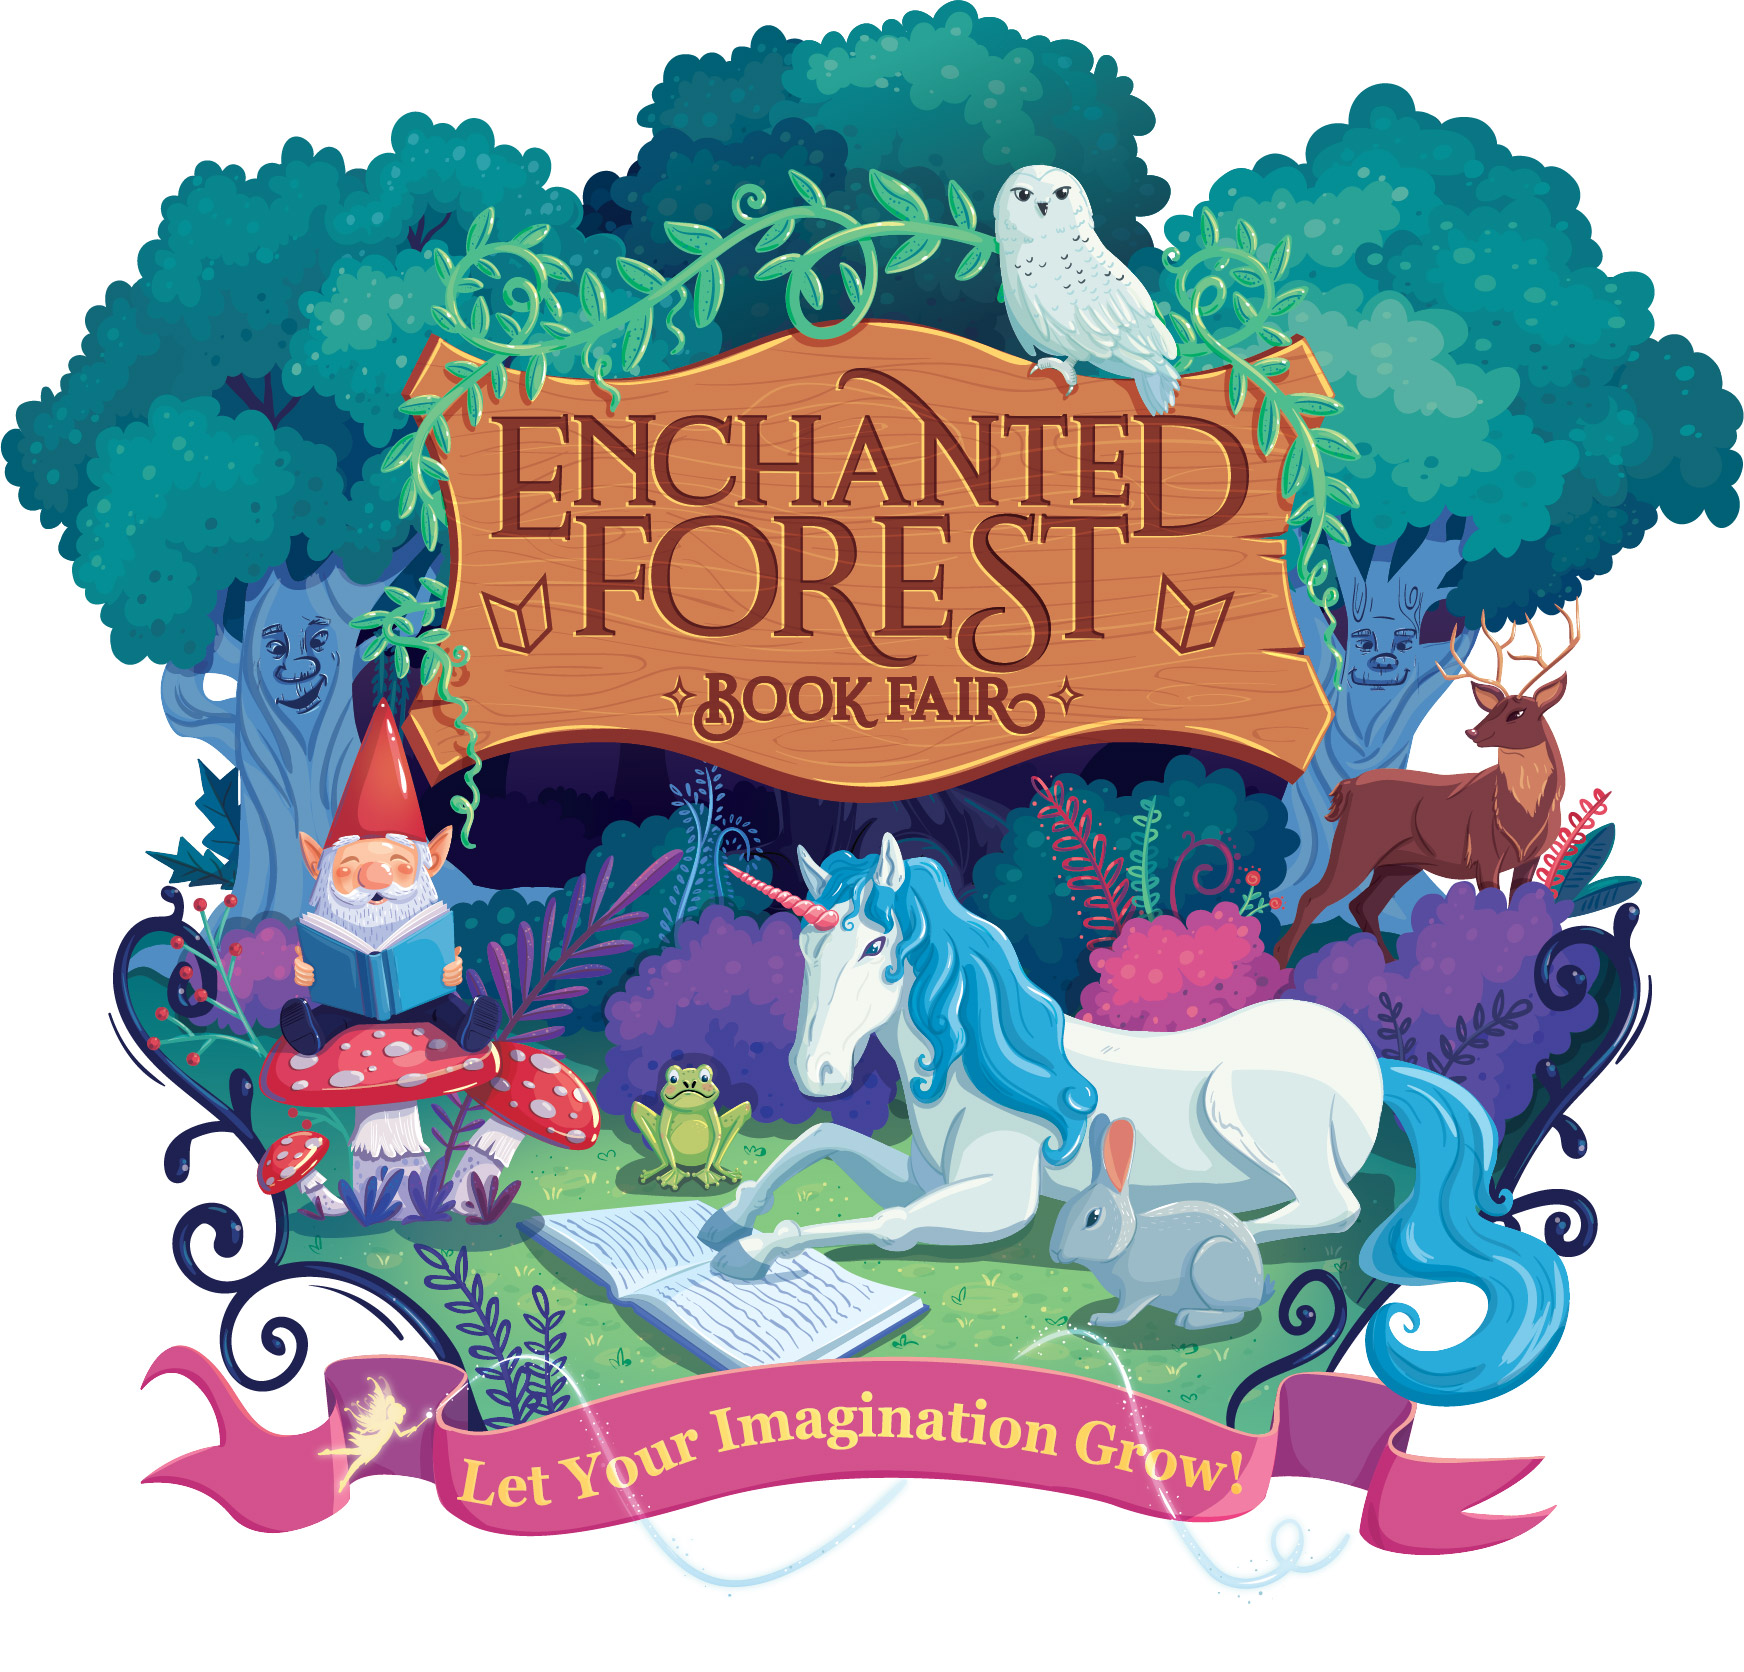 Enchanted Forest Book Fair: Let Your Imagination Grow!.